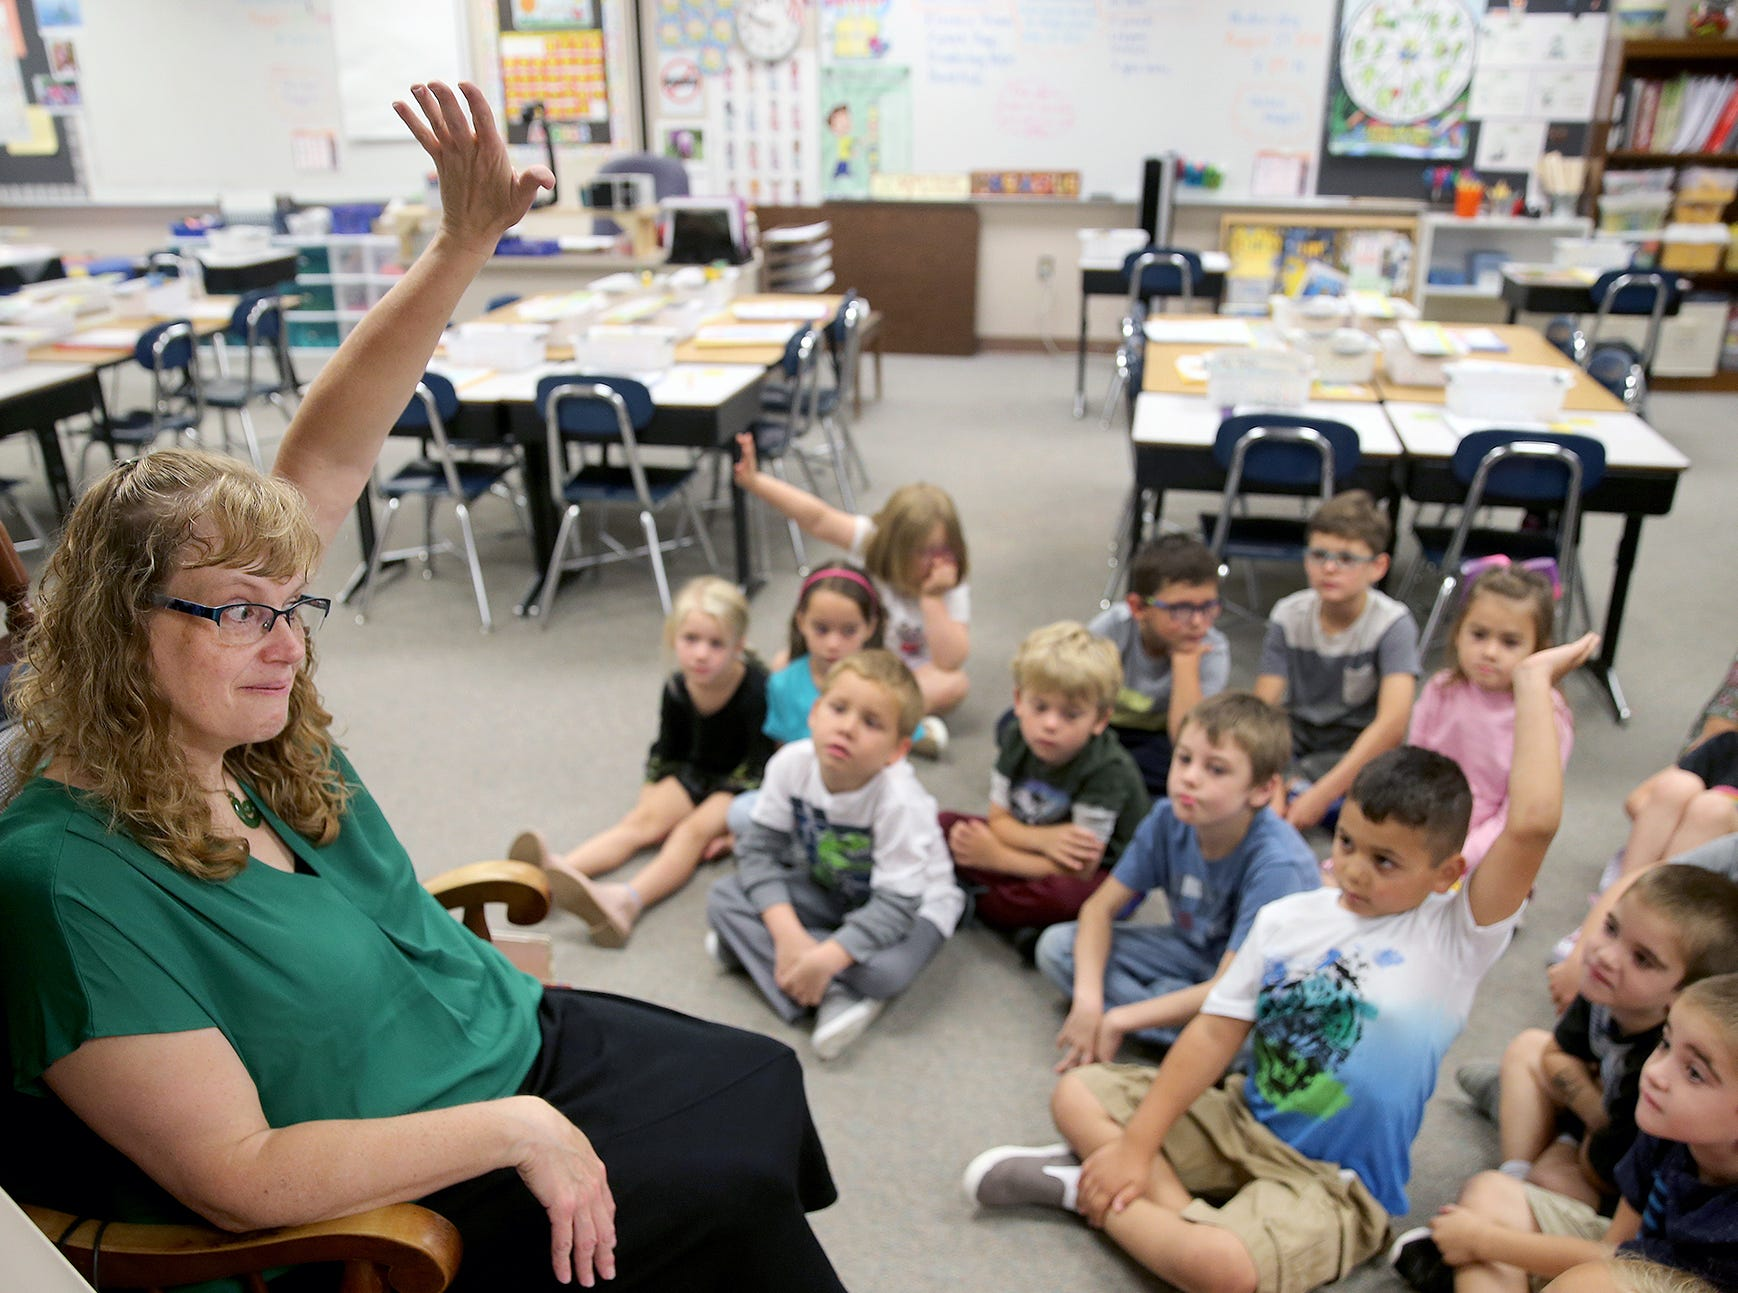 First grade teacher Becky Montgomery encourages students to raise their hands for questions  during class on the first day of school in the Bremerton School District at Kitsap Lake Elementary School on Wednesday, August 29, 2018.